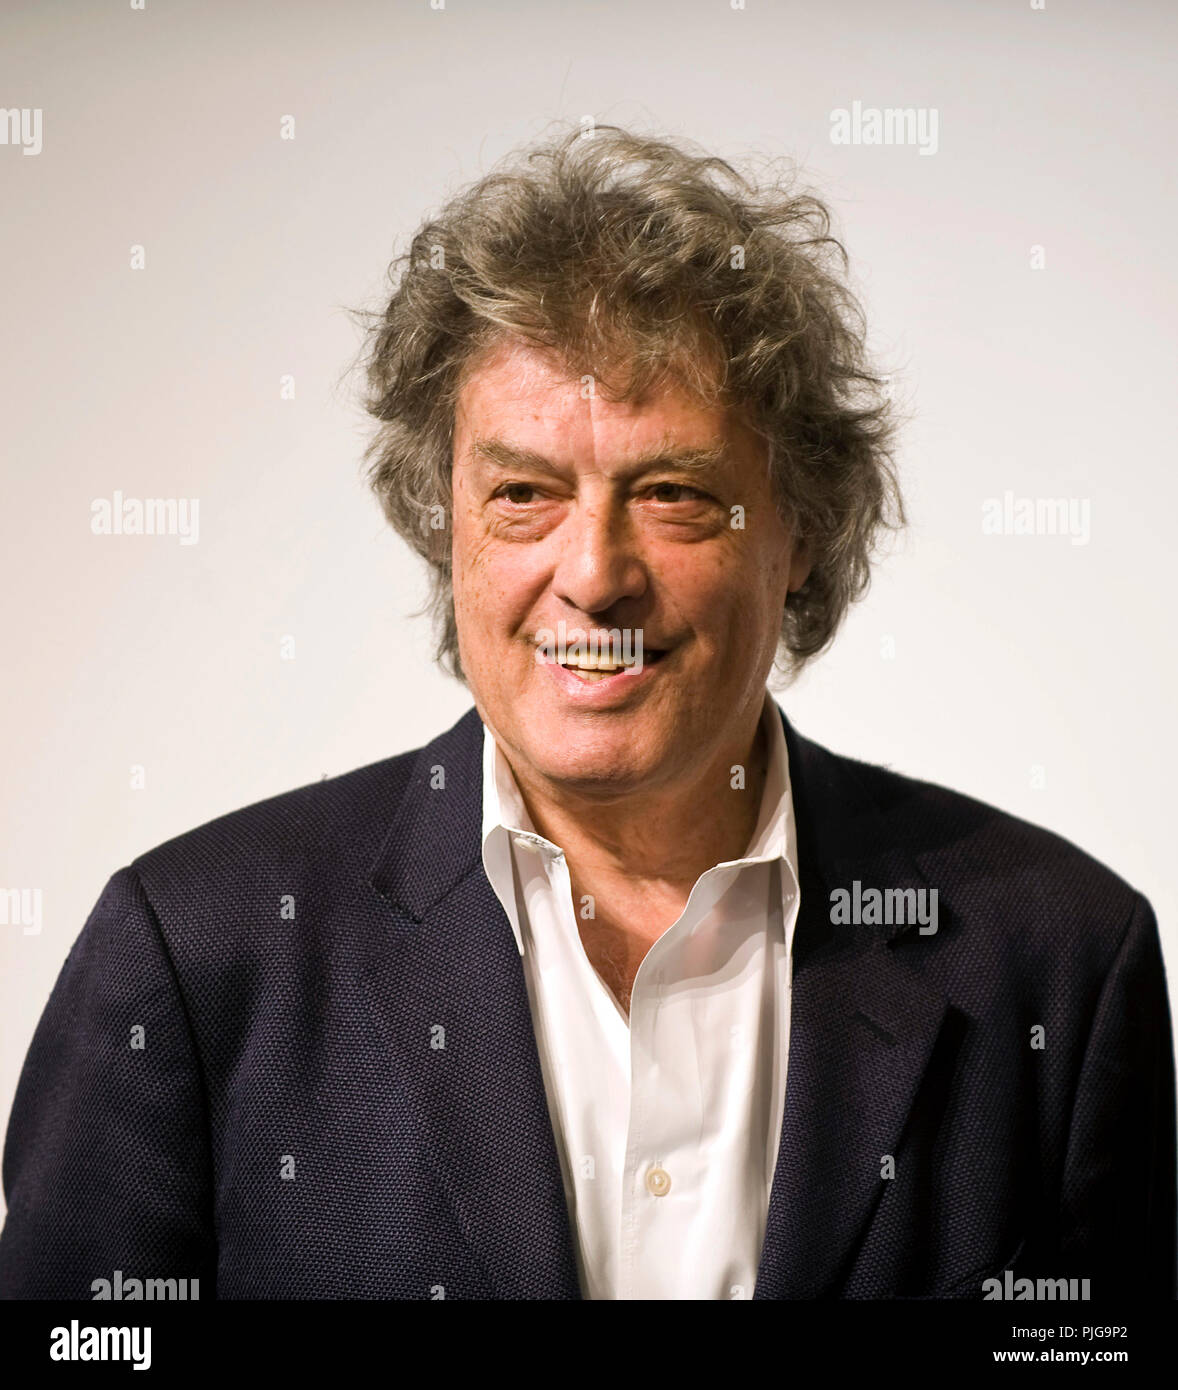 British playwright Tom Stoppard attends a media event formally announcing the winners of the Praemium Imperiale, a global arts prize that is awarded a - Stock Image